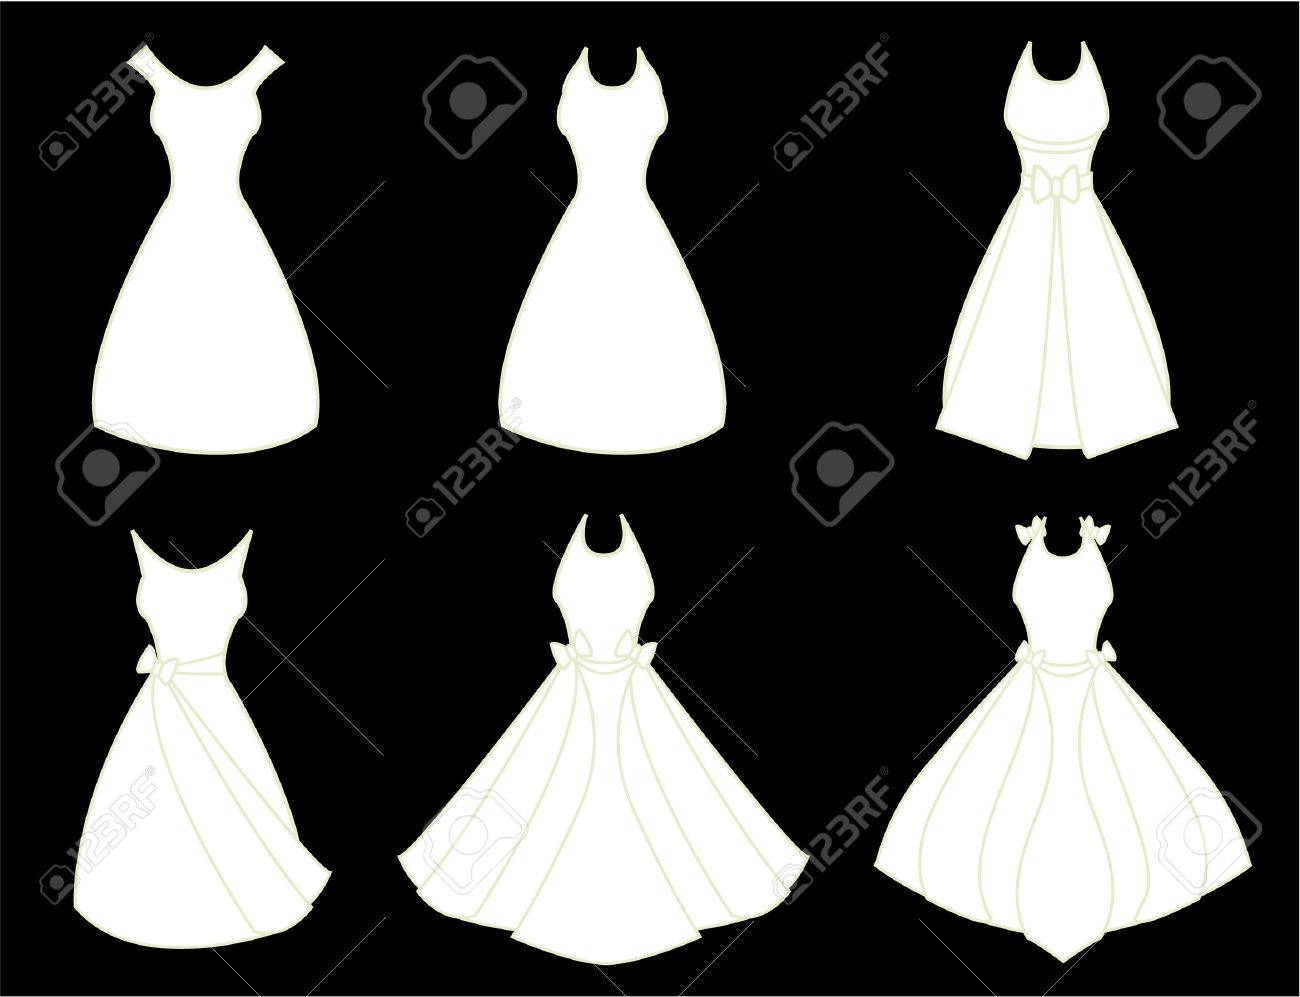 A set of white fancy dresses isolated on a black background - 6468304